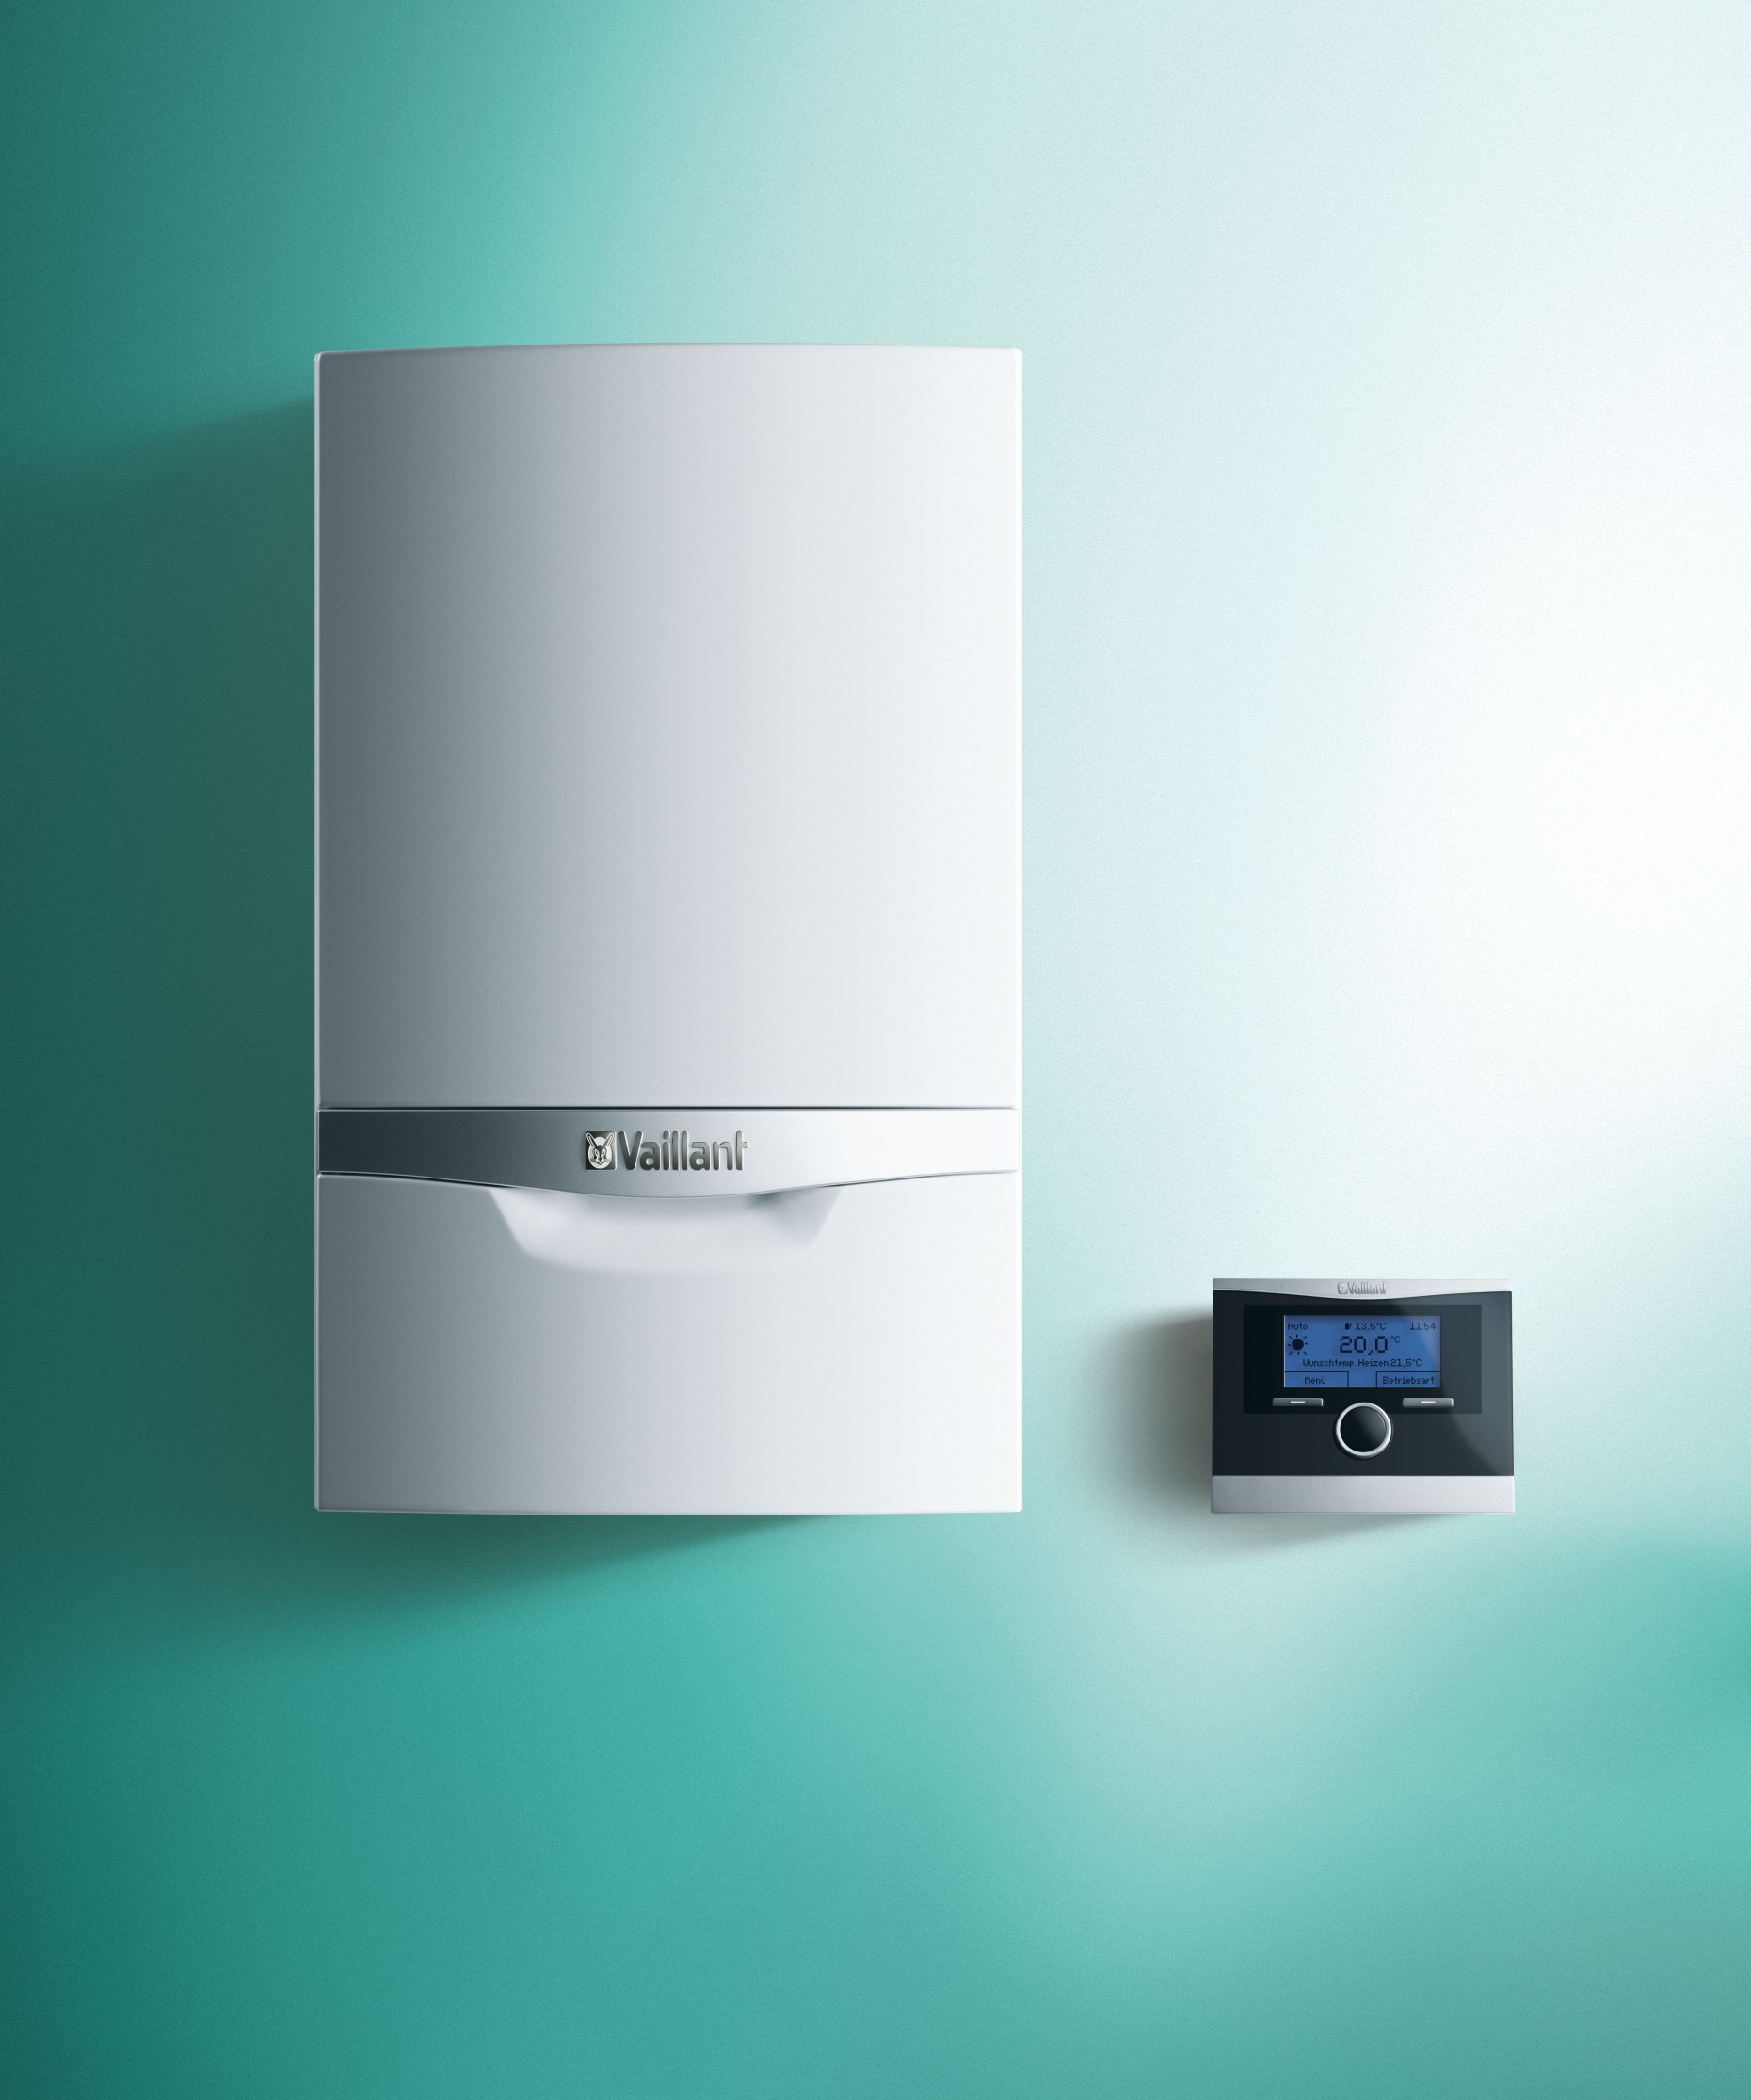 Hartswood heating - Boiler, heating and hot water installation